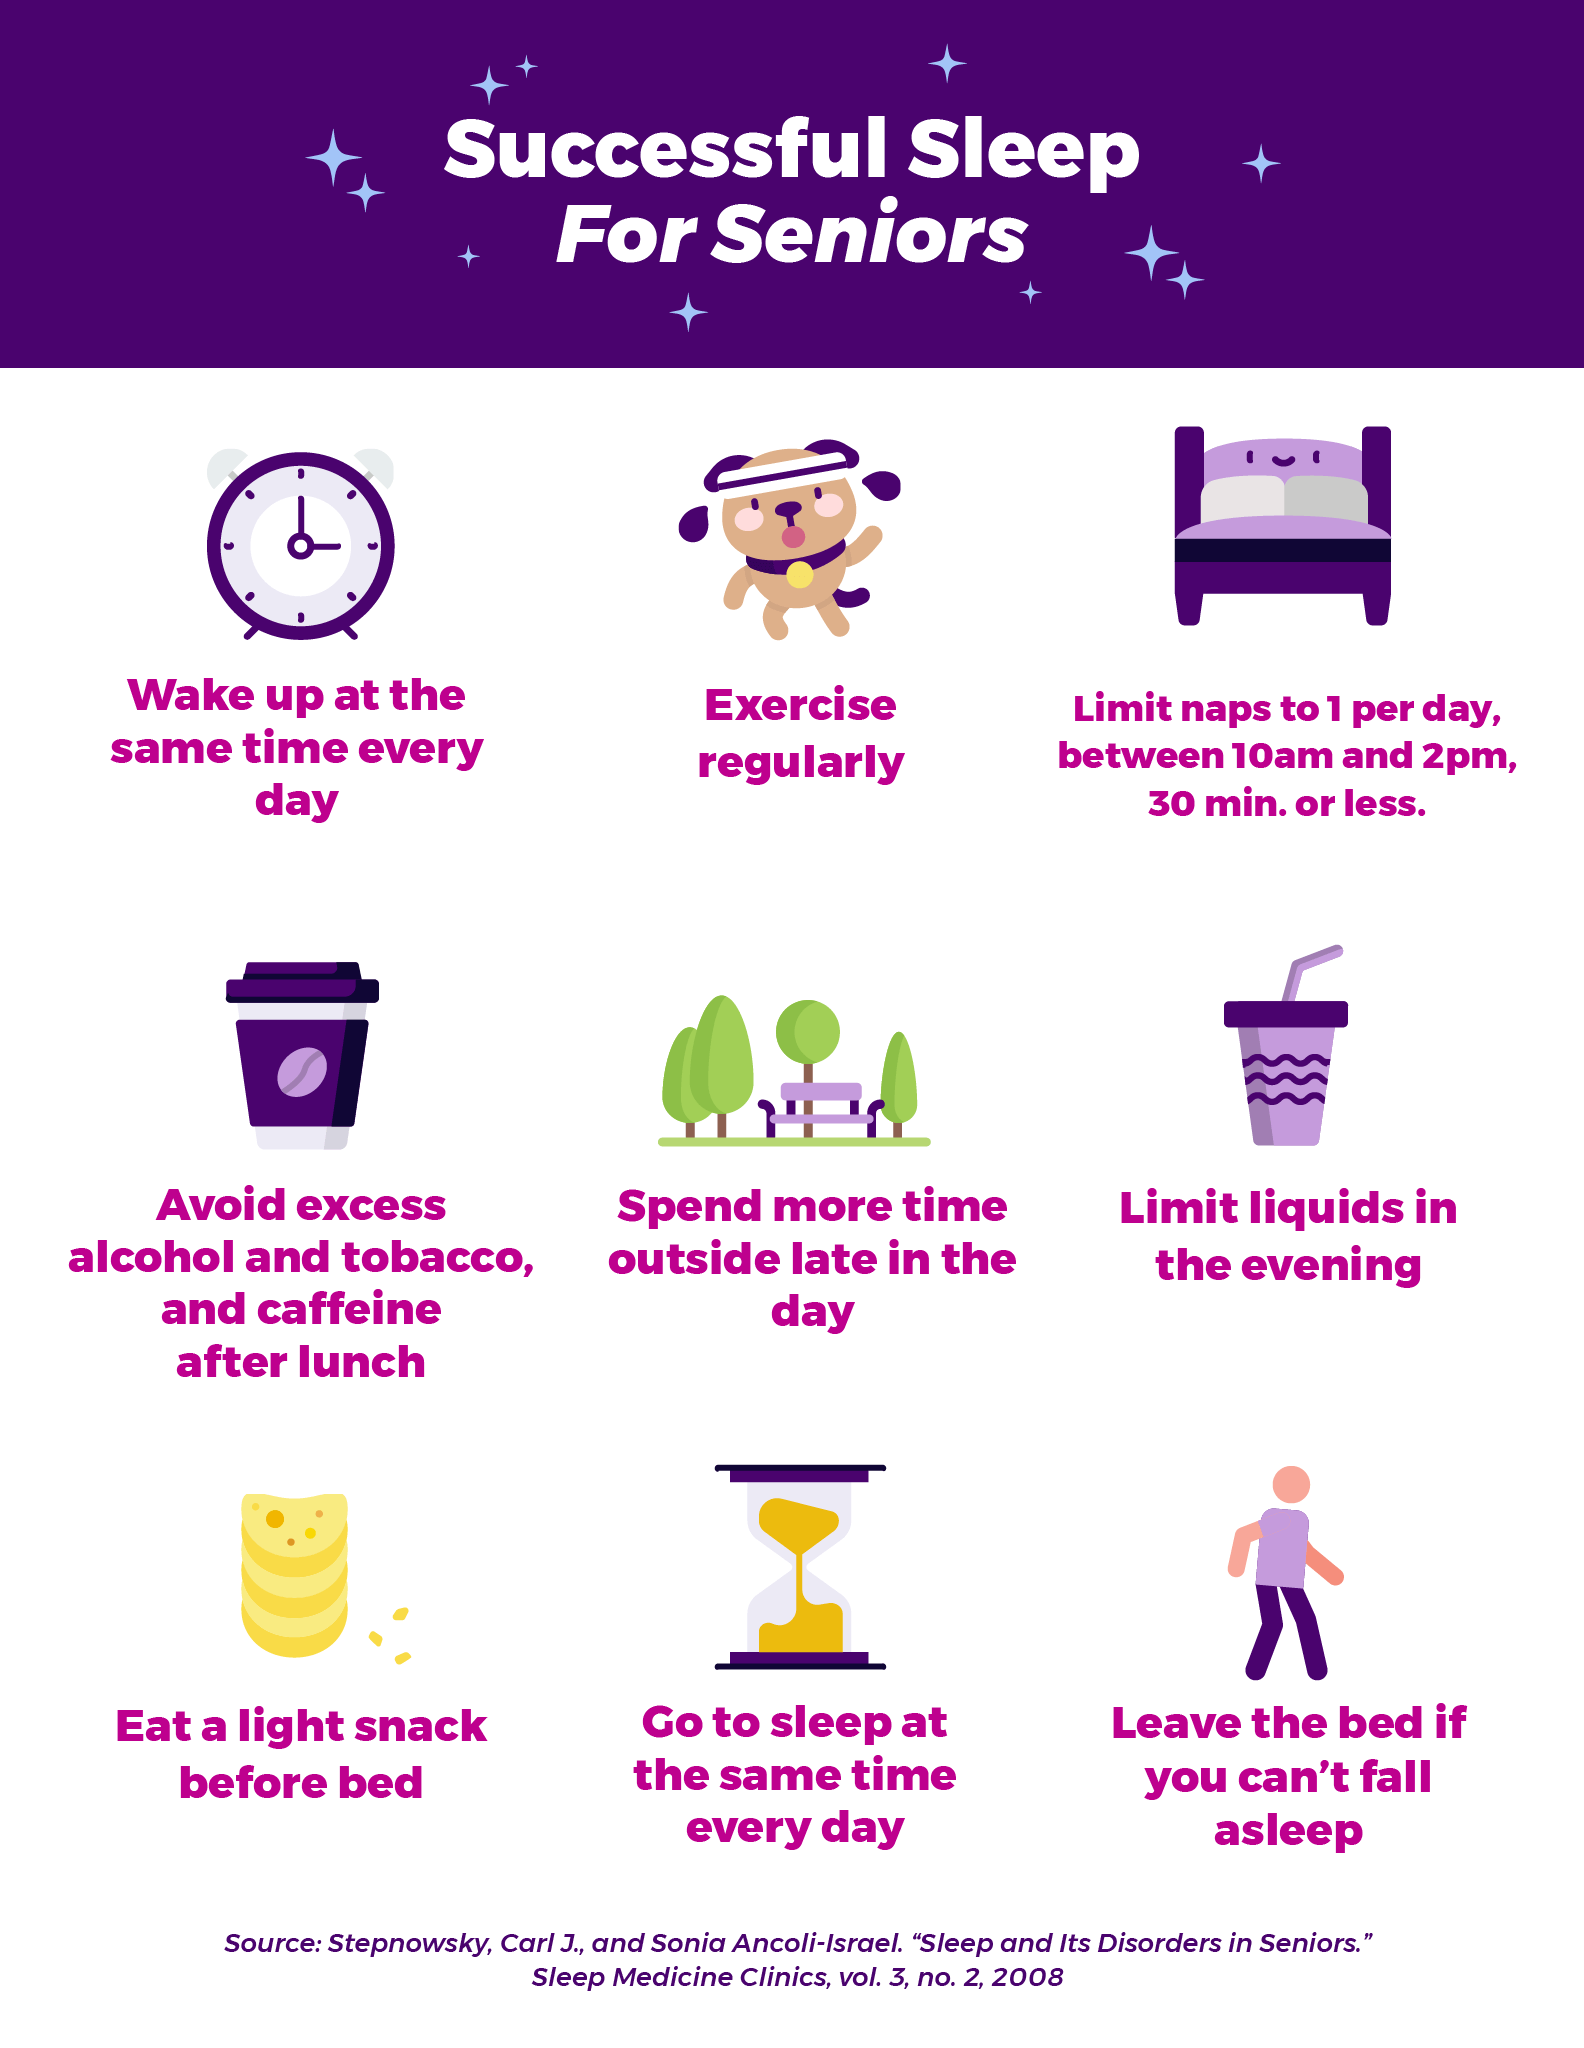 Tips for good sleep for seniors